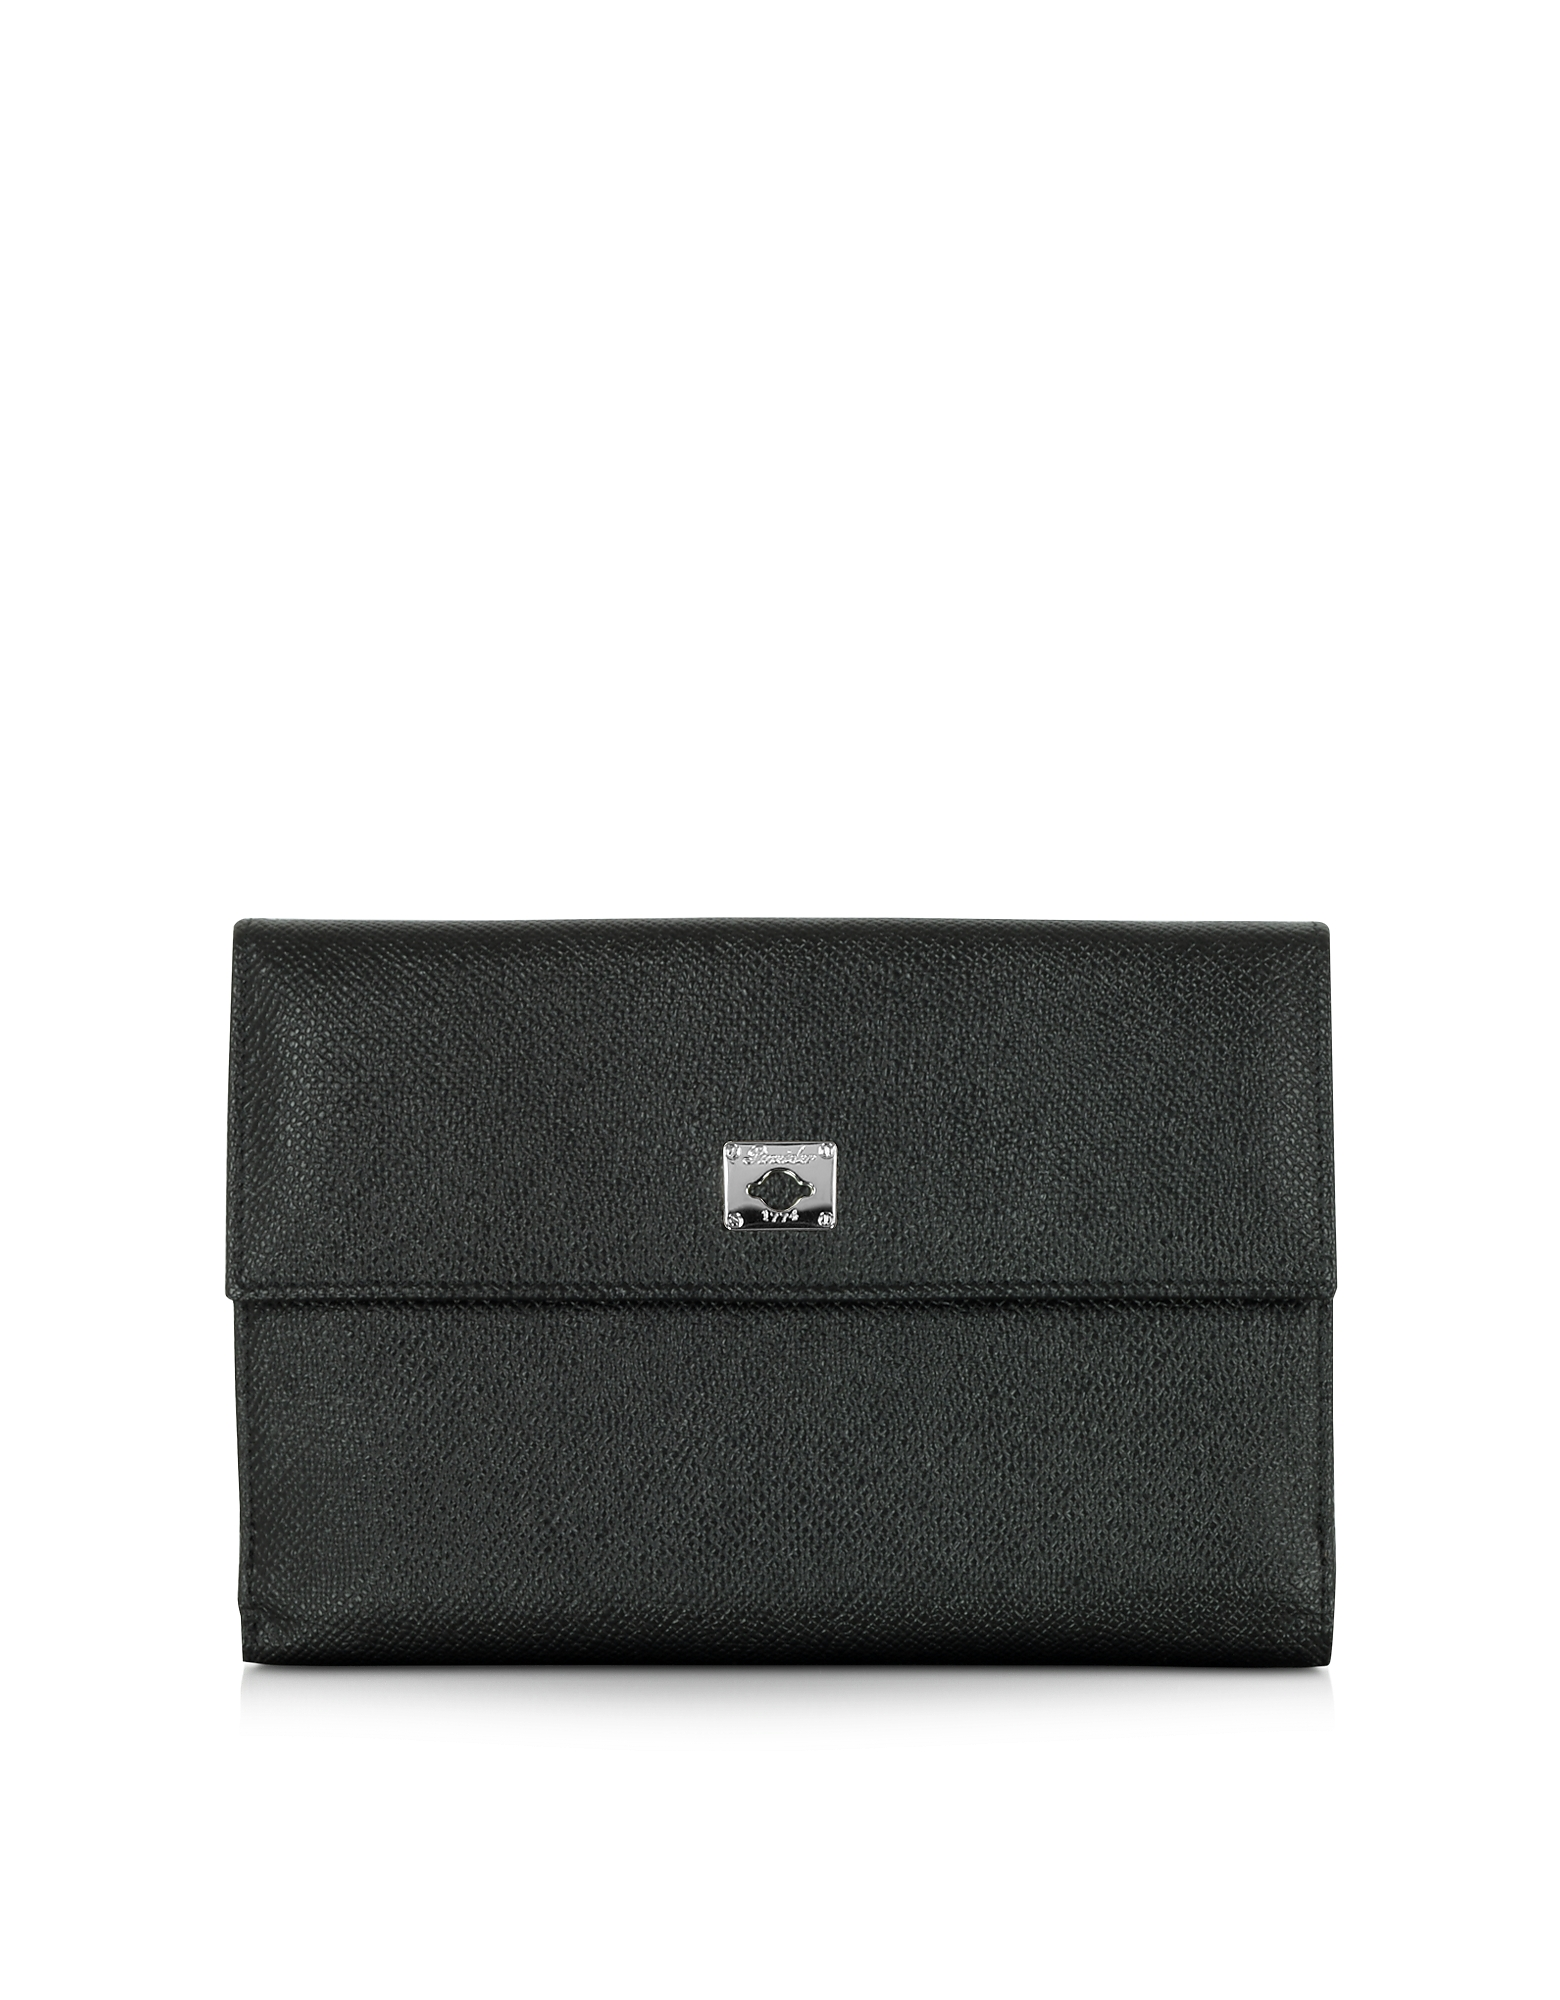 Pineider Handbags, City Chic Black Leather French Purse Wallet